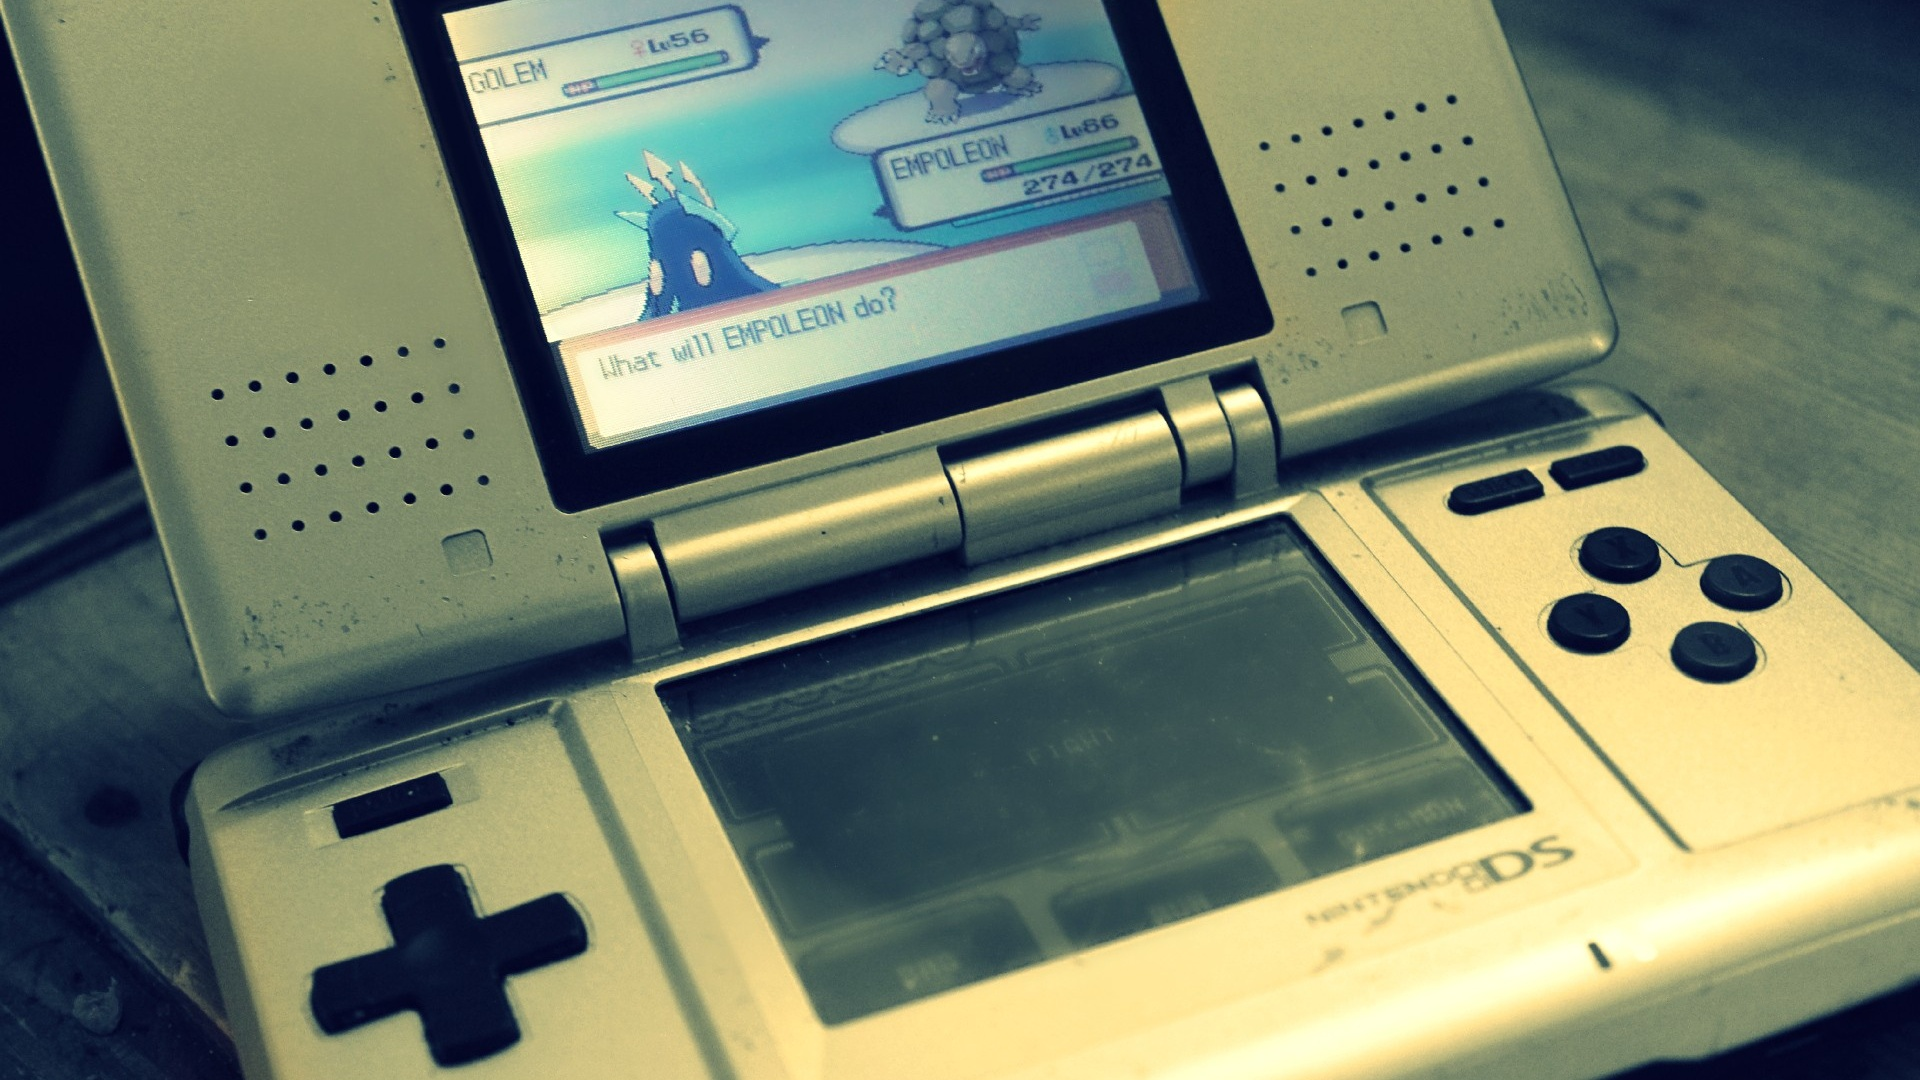 1920x1080 Nintendo DS Pokemon desktop PC and Mac wallpaper